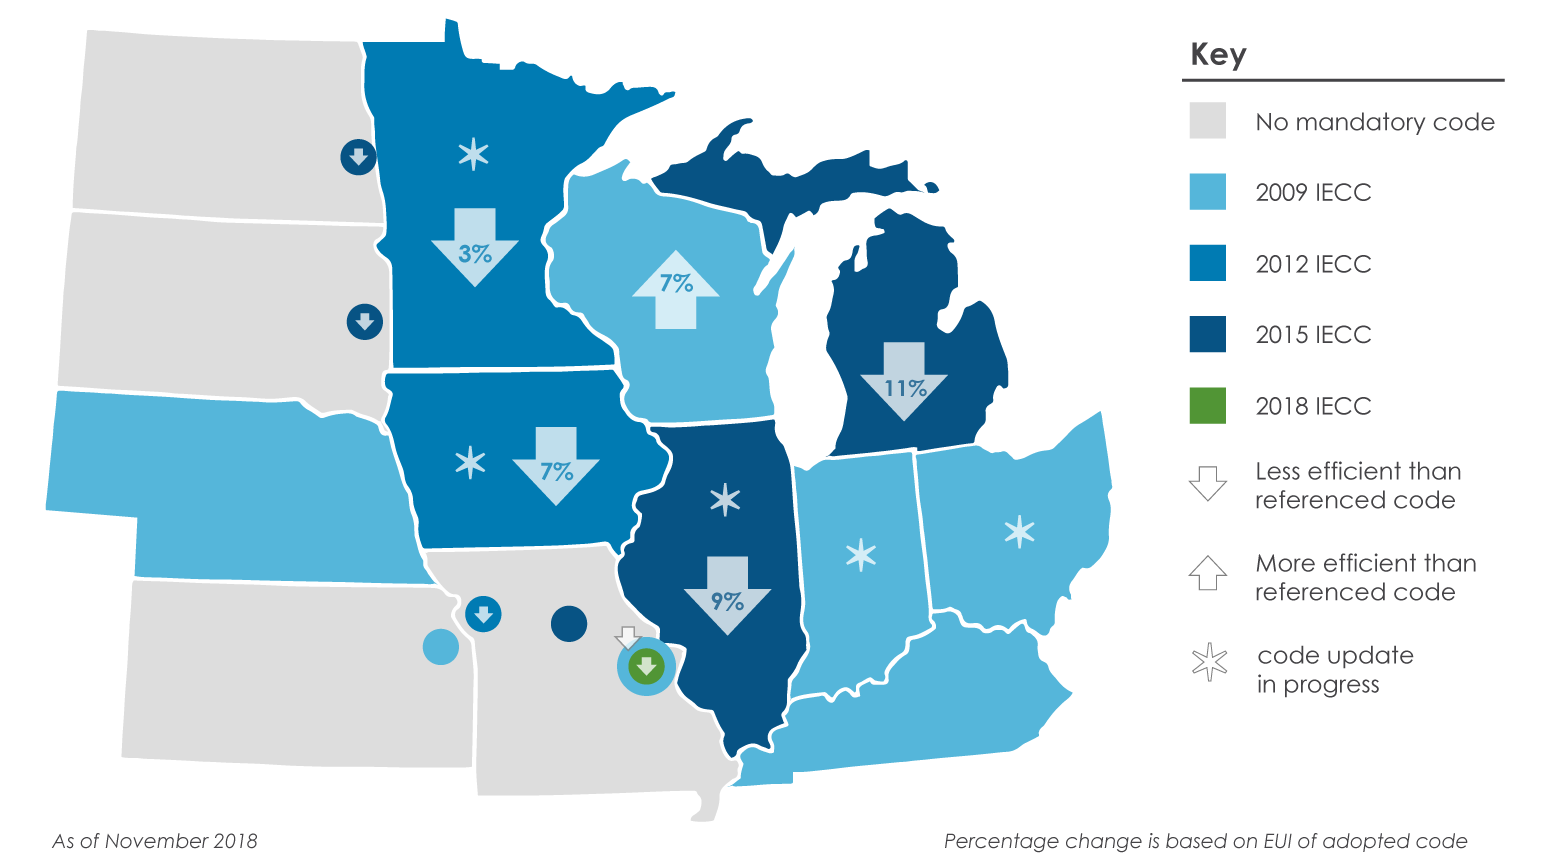 map indicating residential building energy code level in midwest states